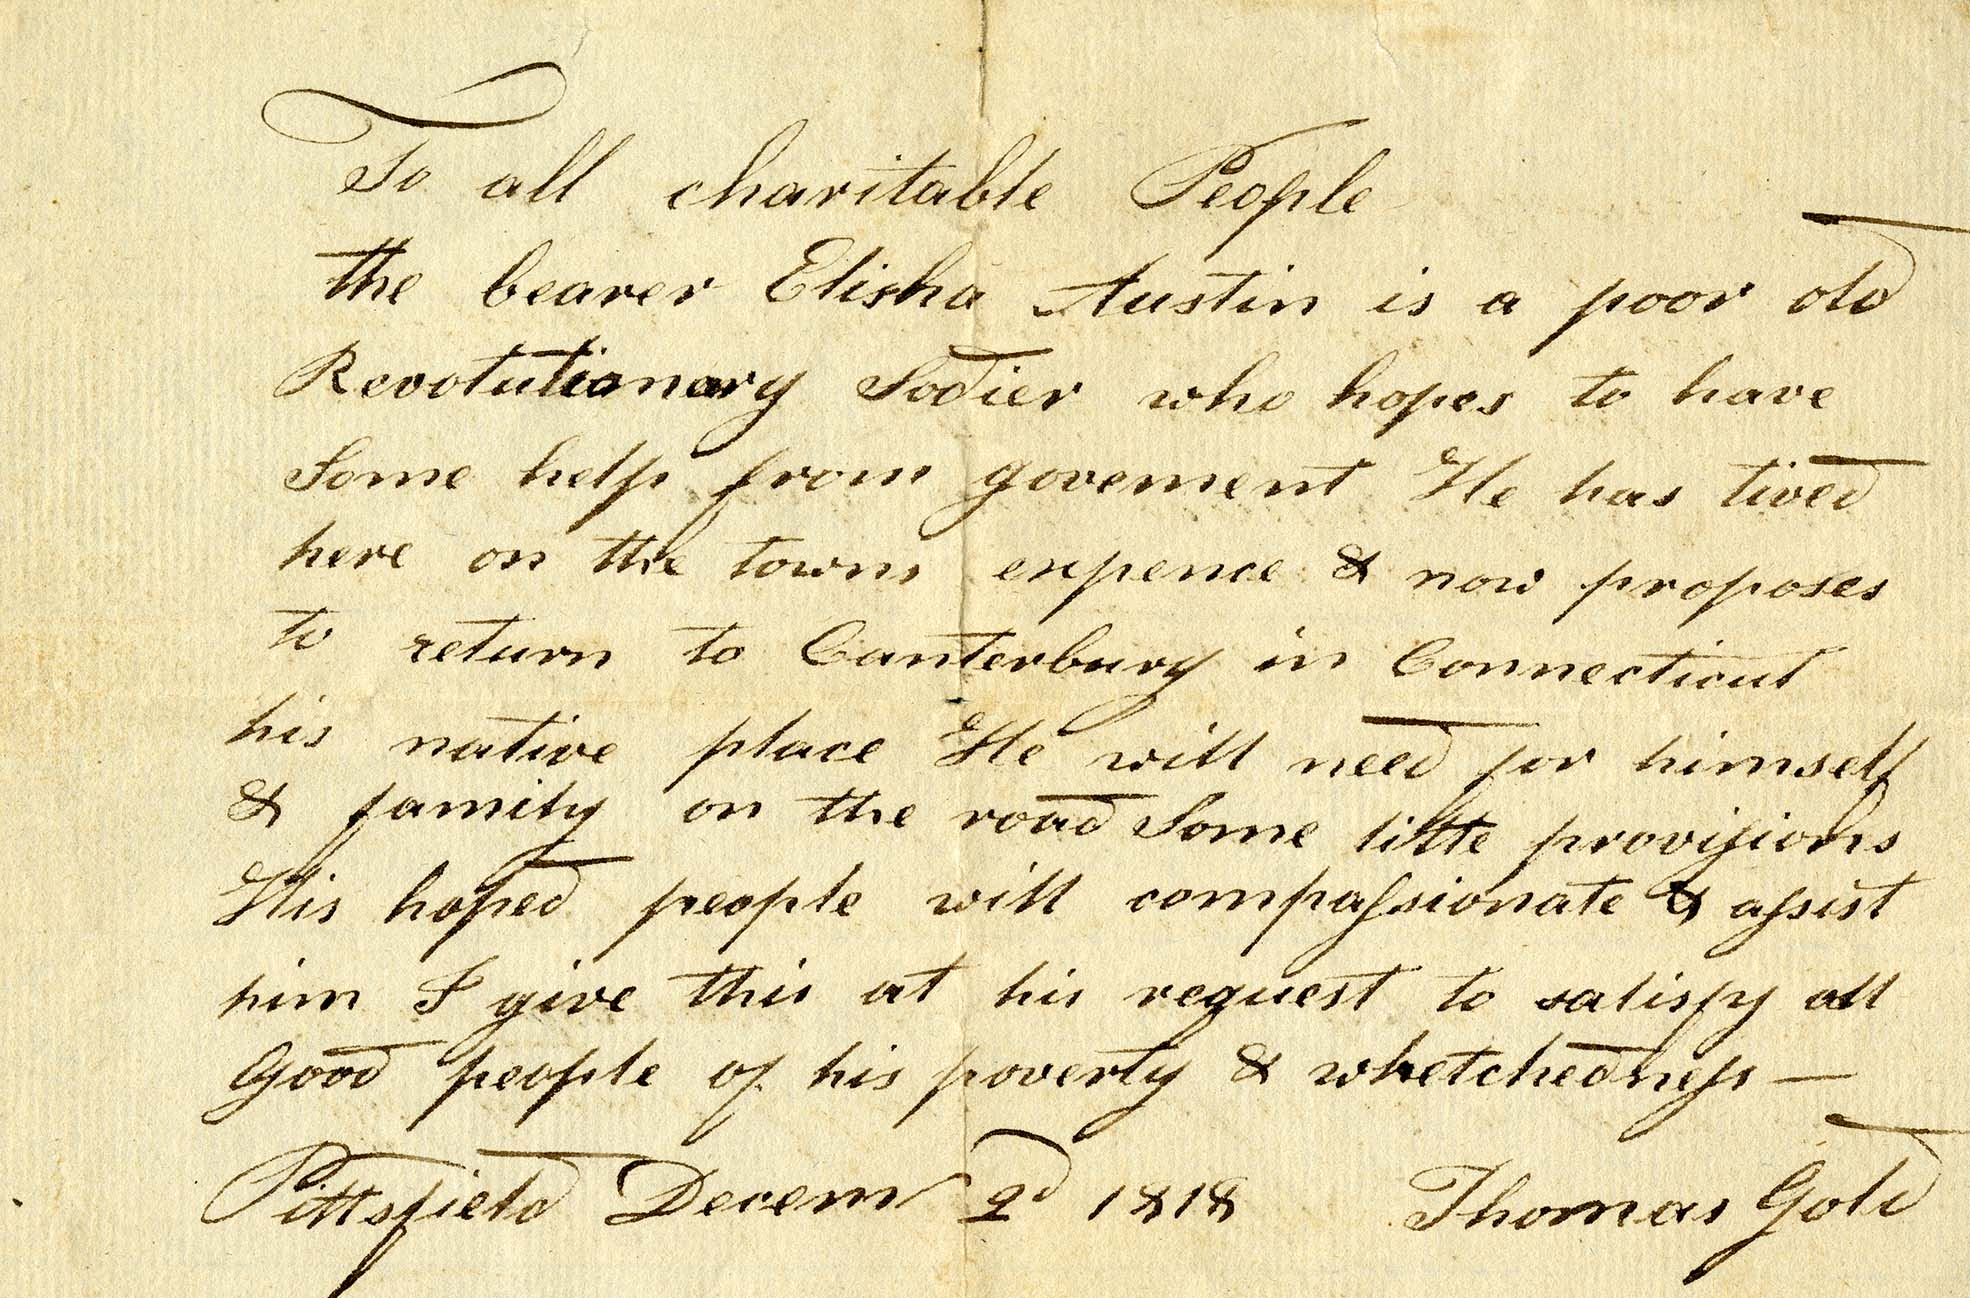 1818 letter to the town of Canterbury asking for financial assistance for a Revolutionary War veteran. From the T.S. Gold Family Papers